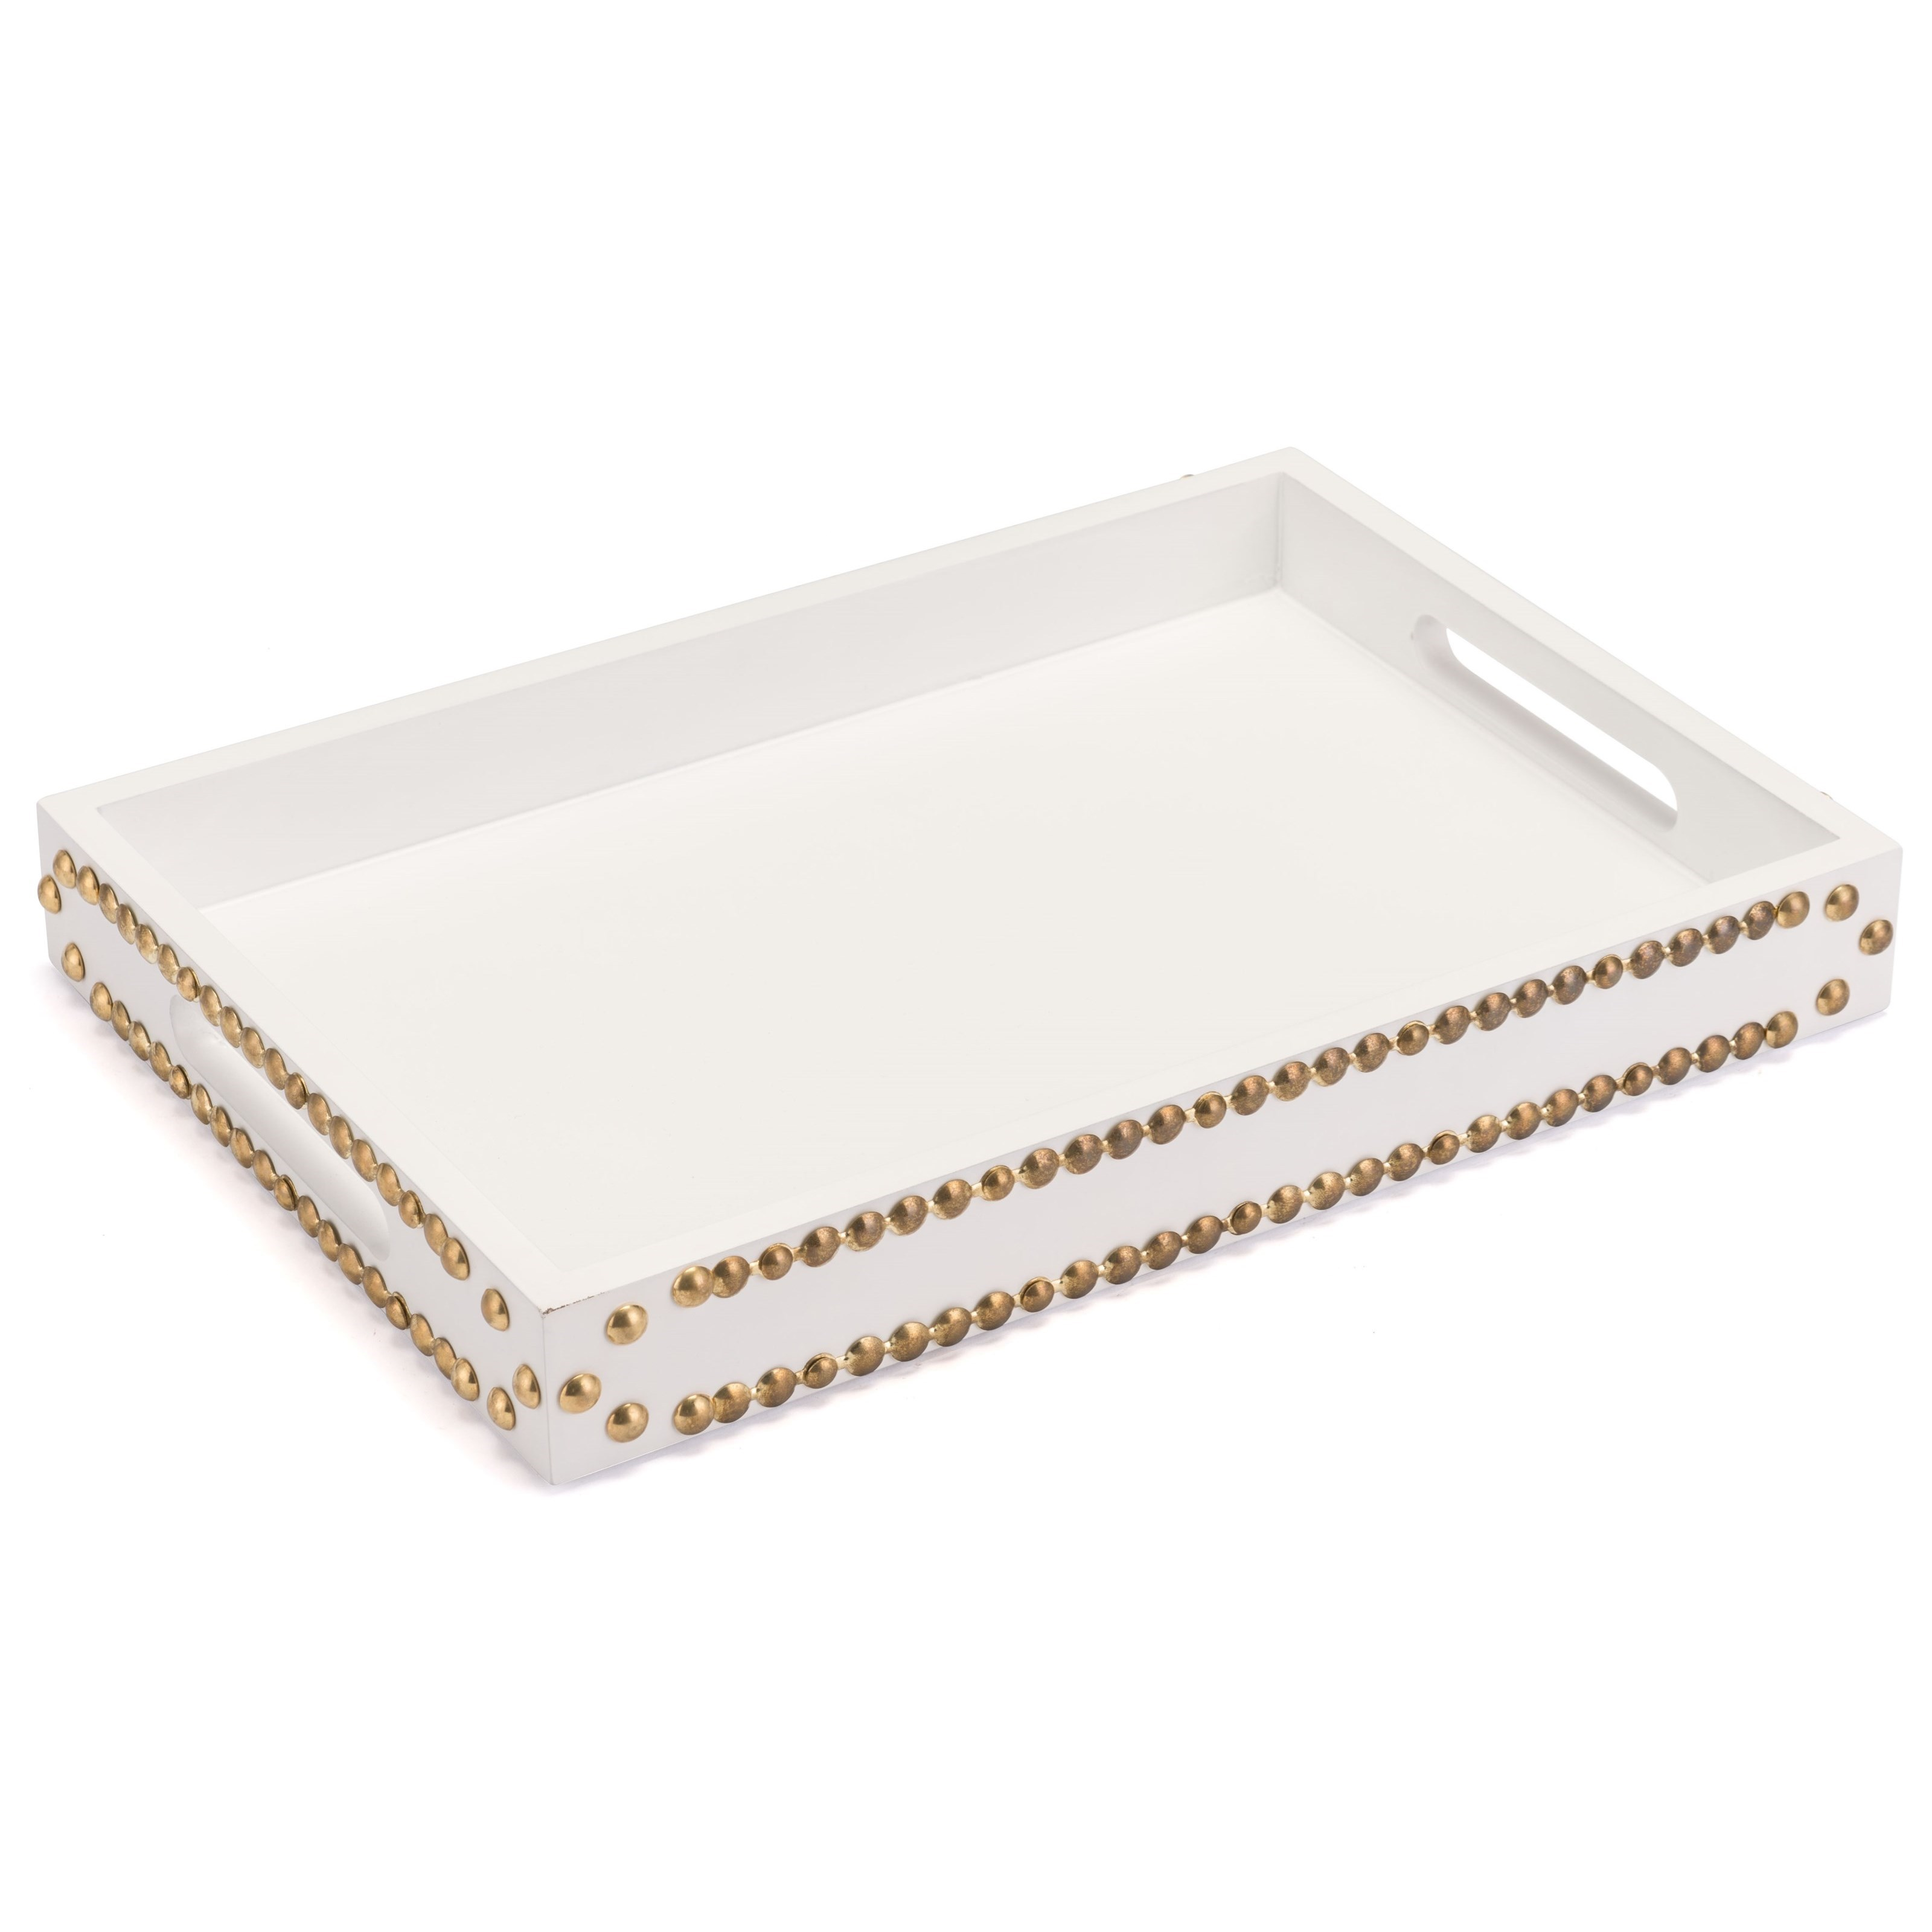 Zuo Boxes, Bowls and Trays Tray with Studs - Item Number: A10357